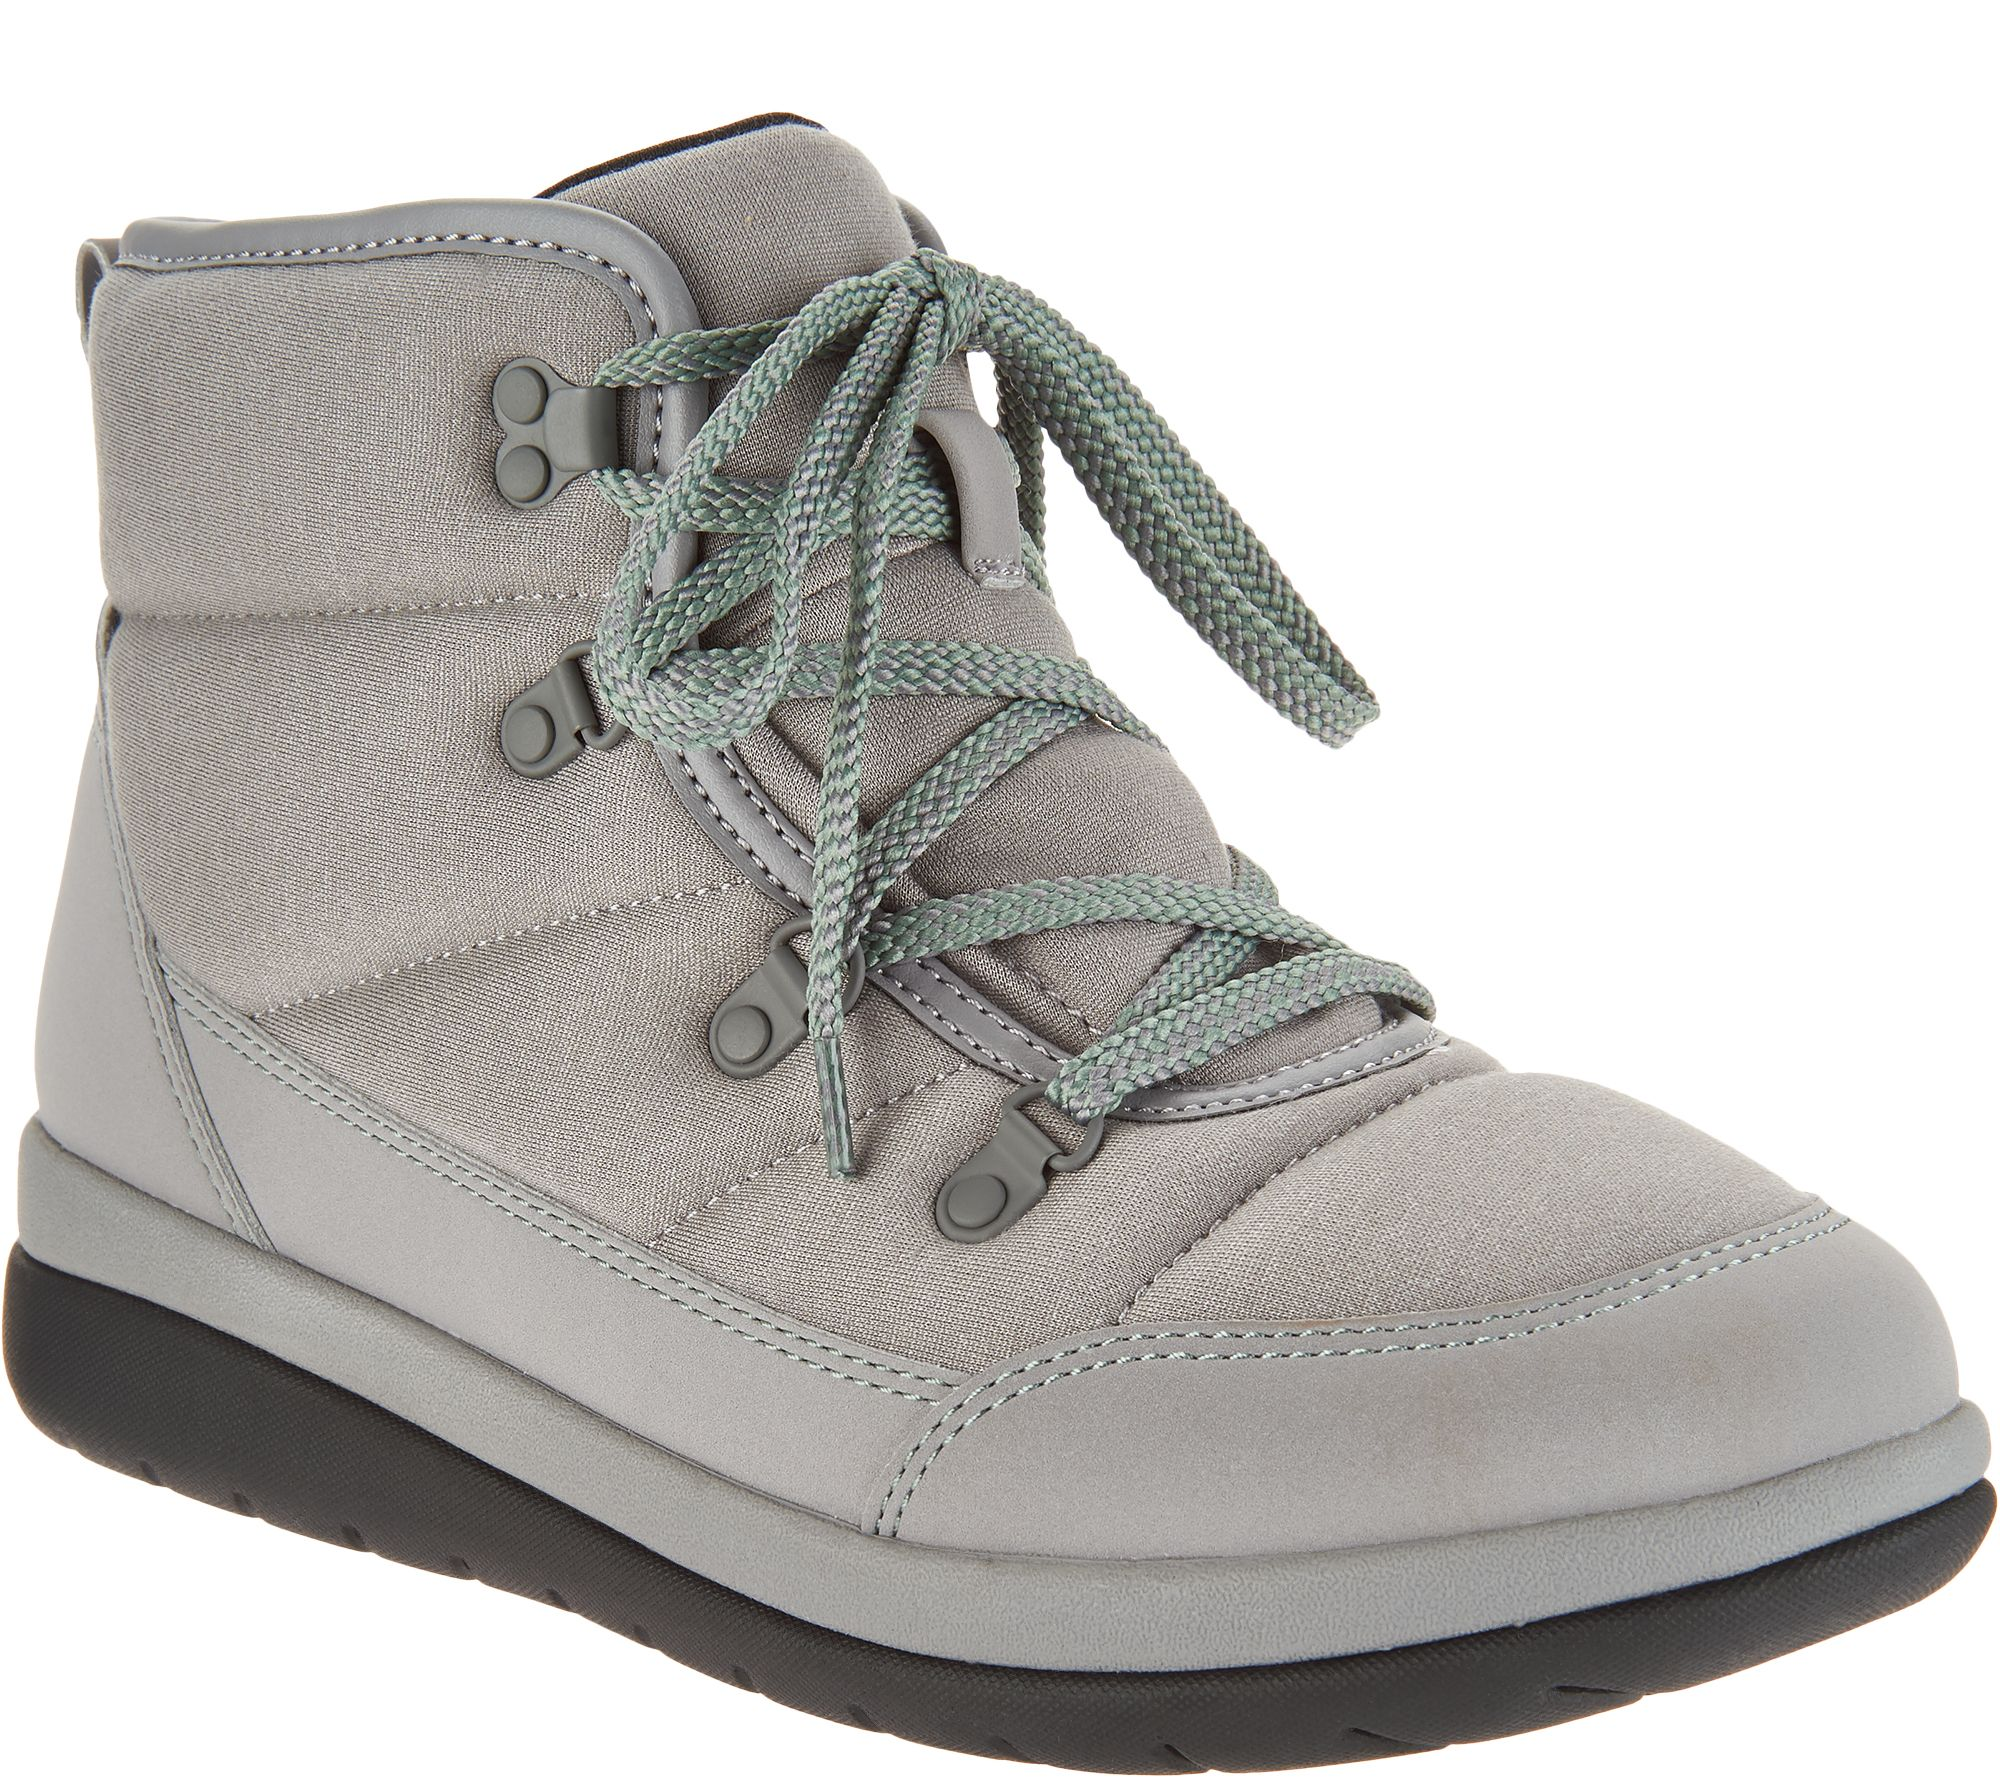 Quot As Is Quot Cloudsteppers By Clarks Lace Up Boots Cabrini